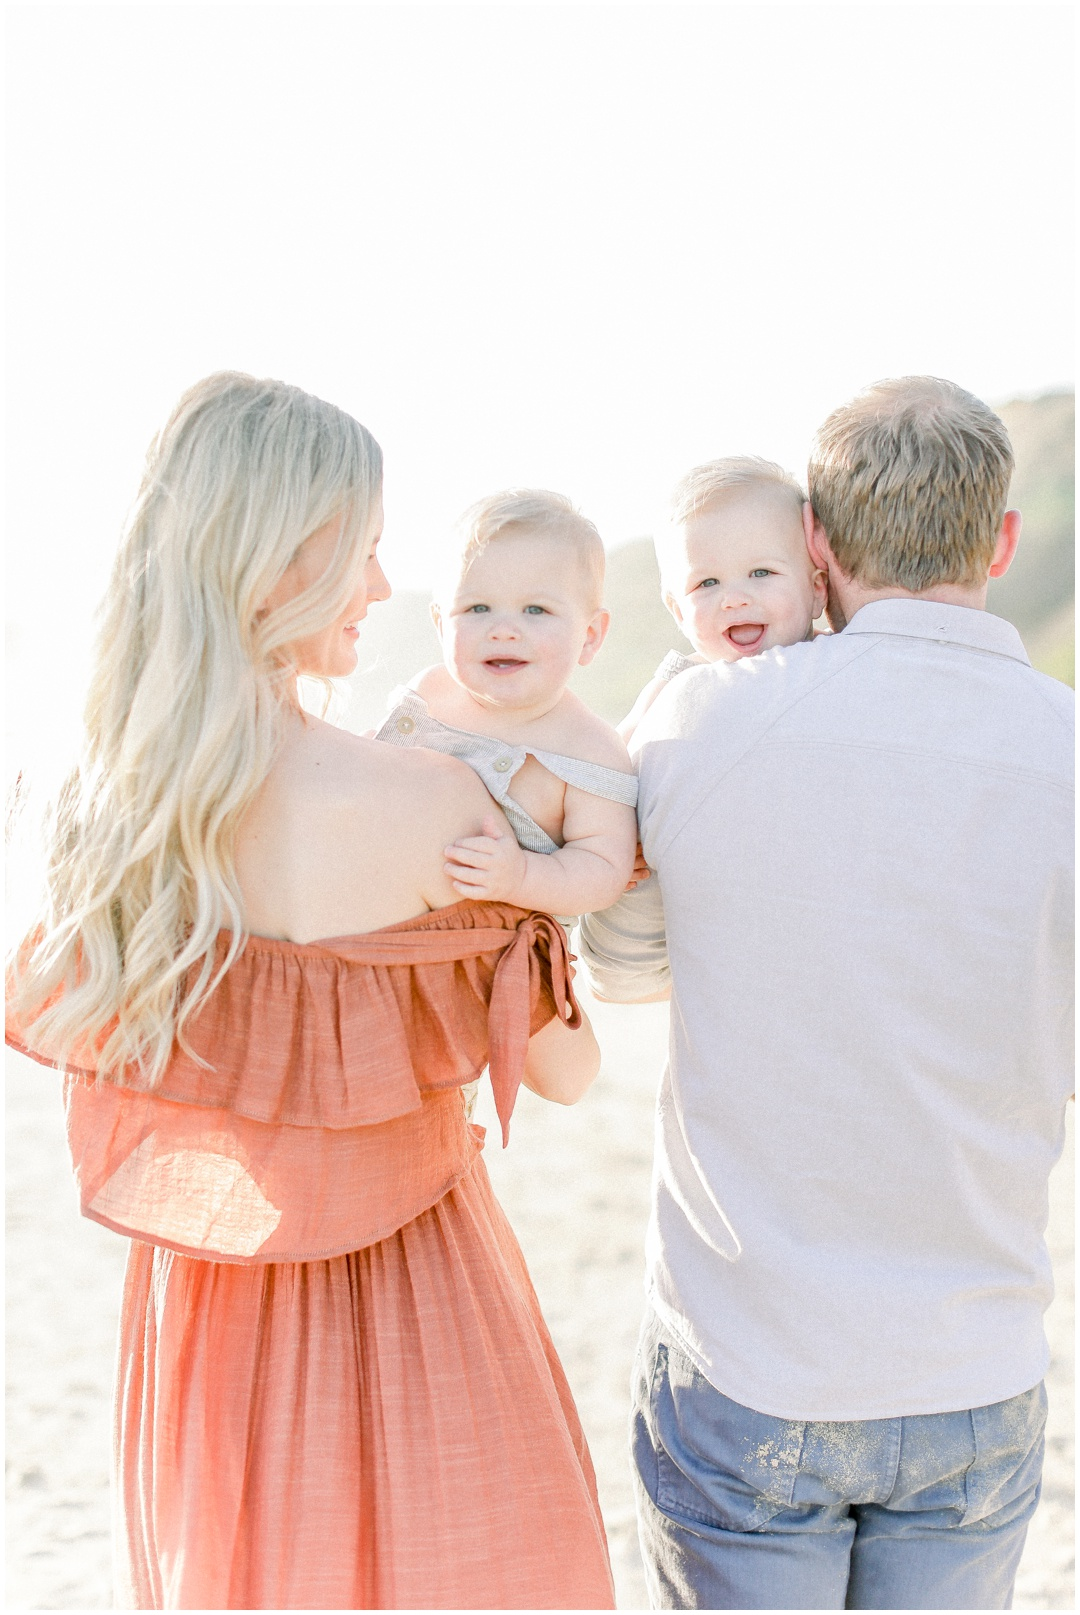 Newport_Beach_Newborn_Light_Airy_Natural_Photographer_Newport_Beach_Photographer_Orange_County_Family_Photographer_Cori_Kleckner_Photography_Huntington_Beach_Photographer_Family_OC_Newborn_Kelly_Bandak_Nik_Bandak__3534.jpg